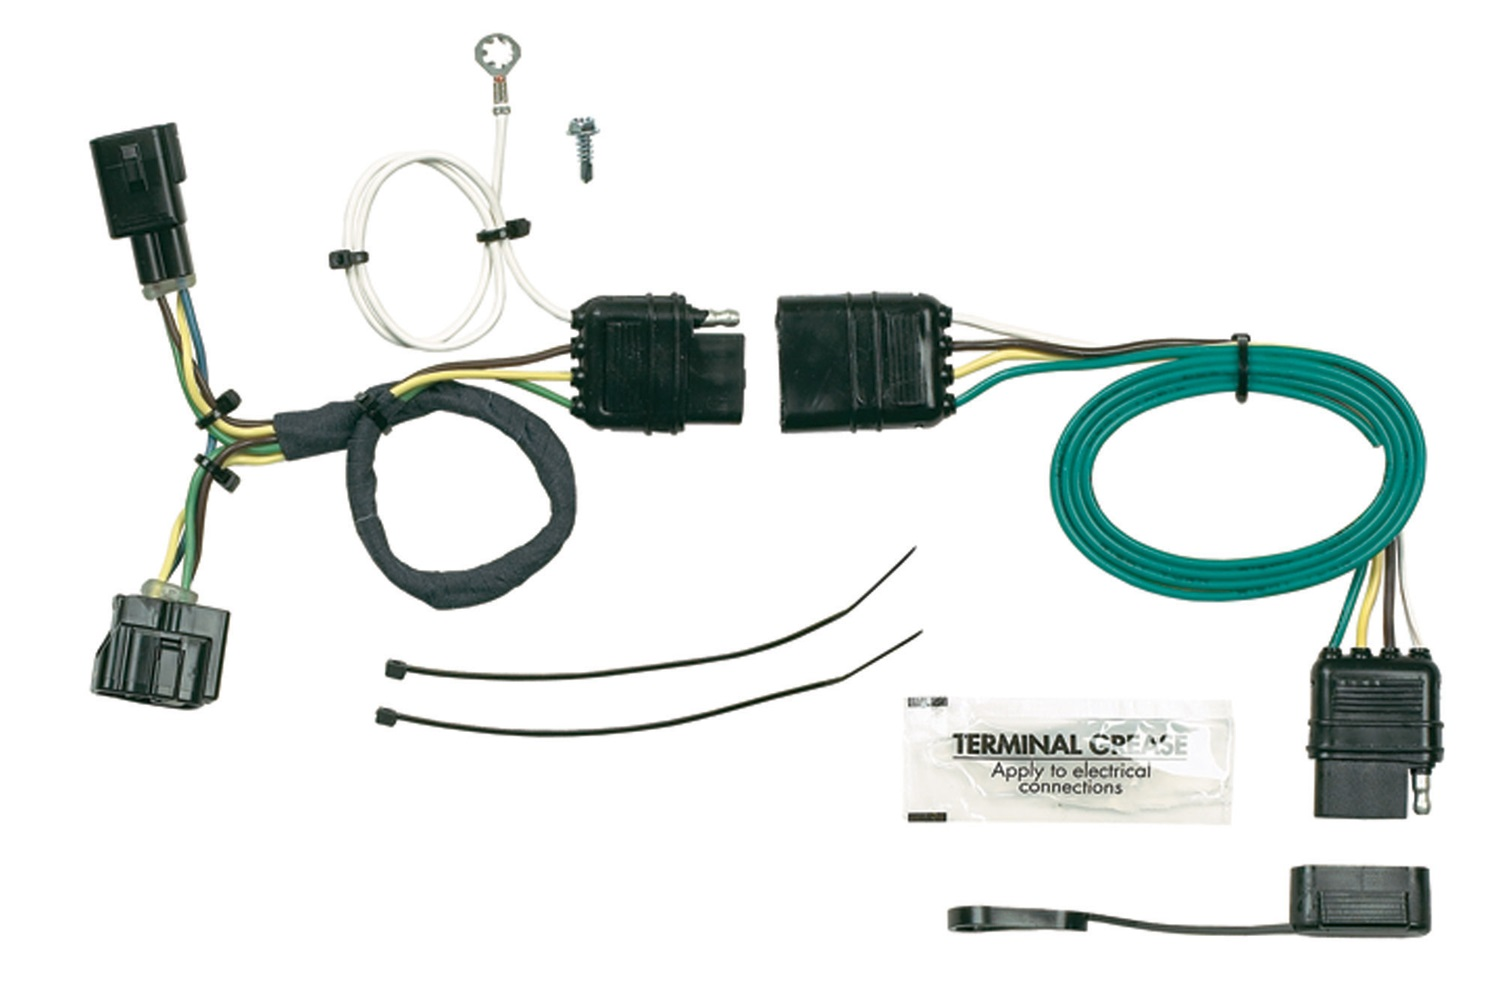 hopkins wiring harnesses towing solutions trailer harness kit 2004 suzuki eiger 400 4x4 diagram solution 42625 plug in simple vehicle to